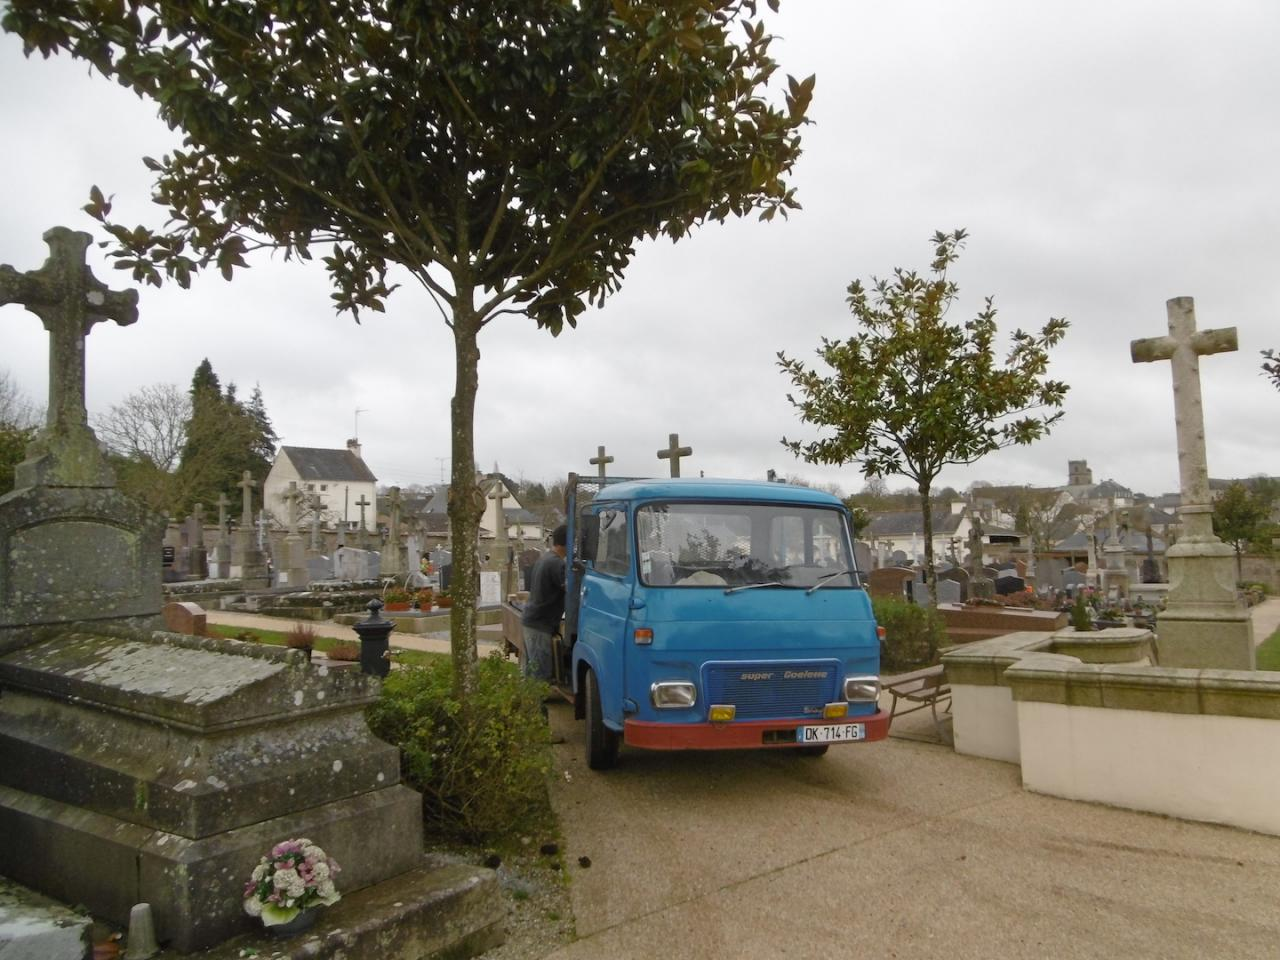 Arriving at the cemetery